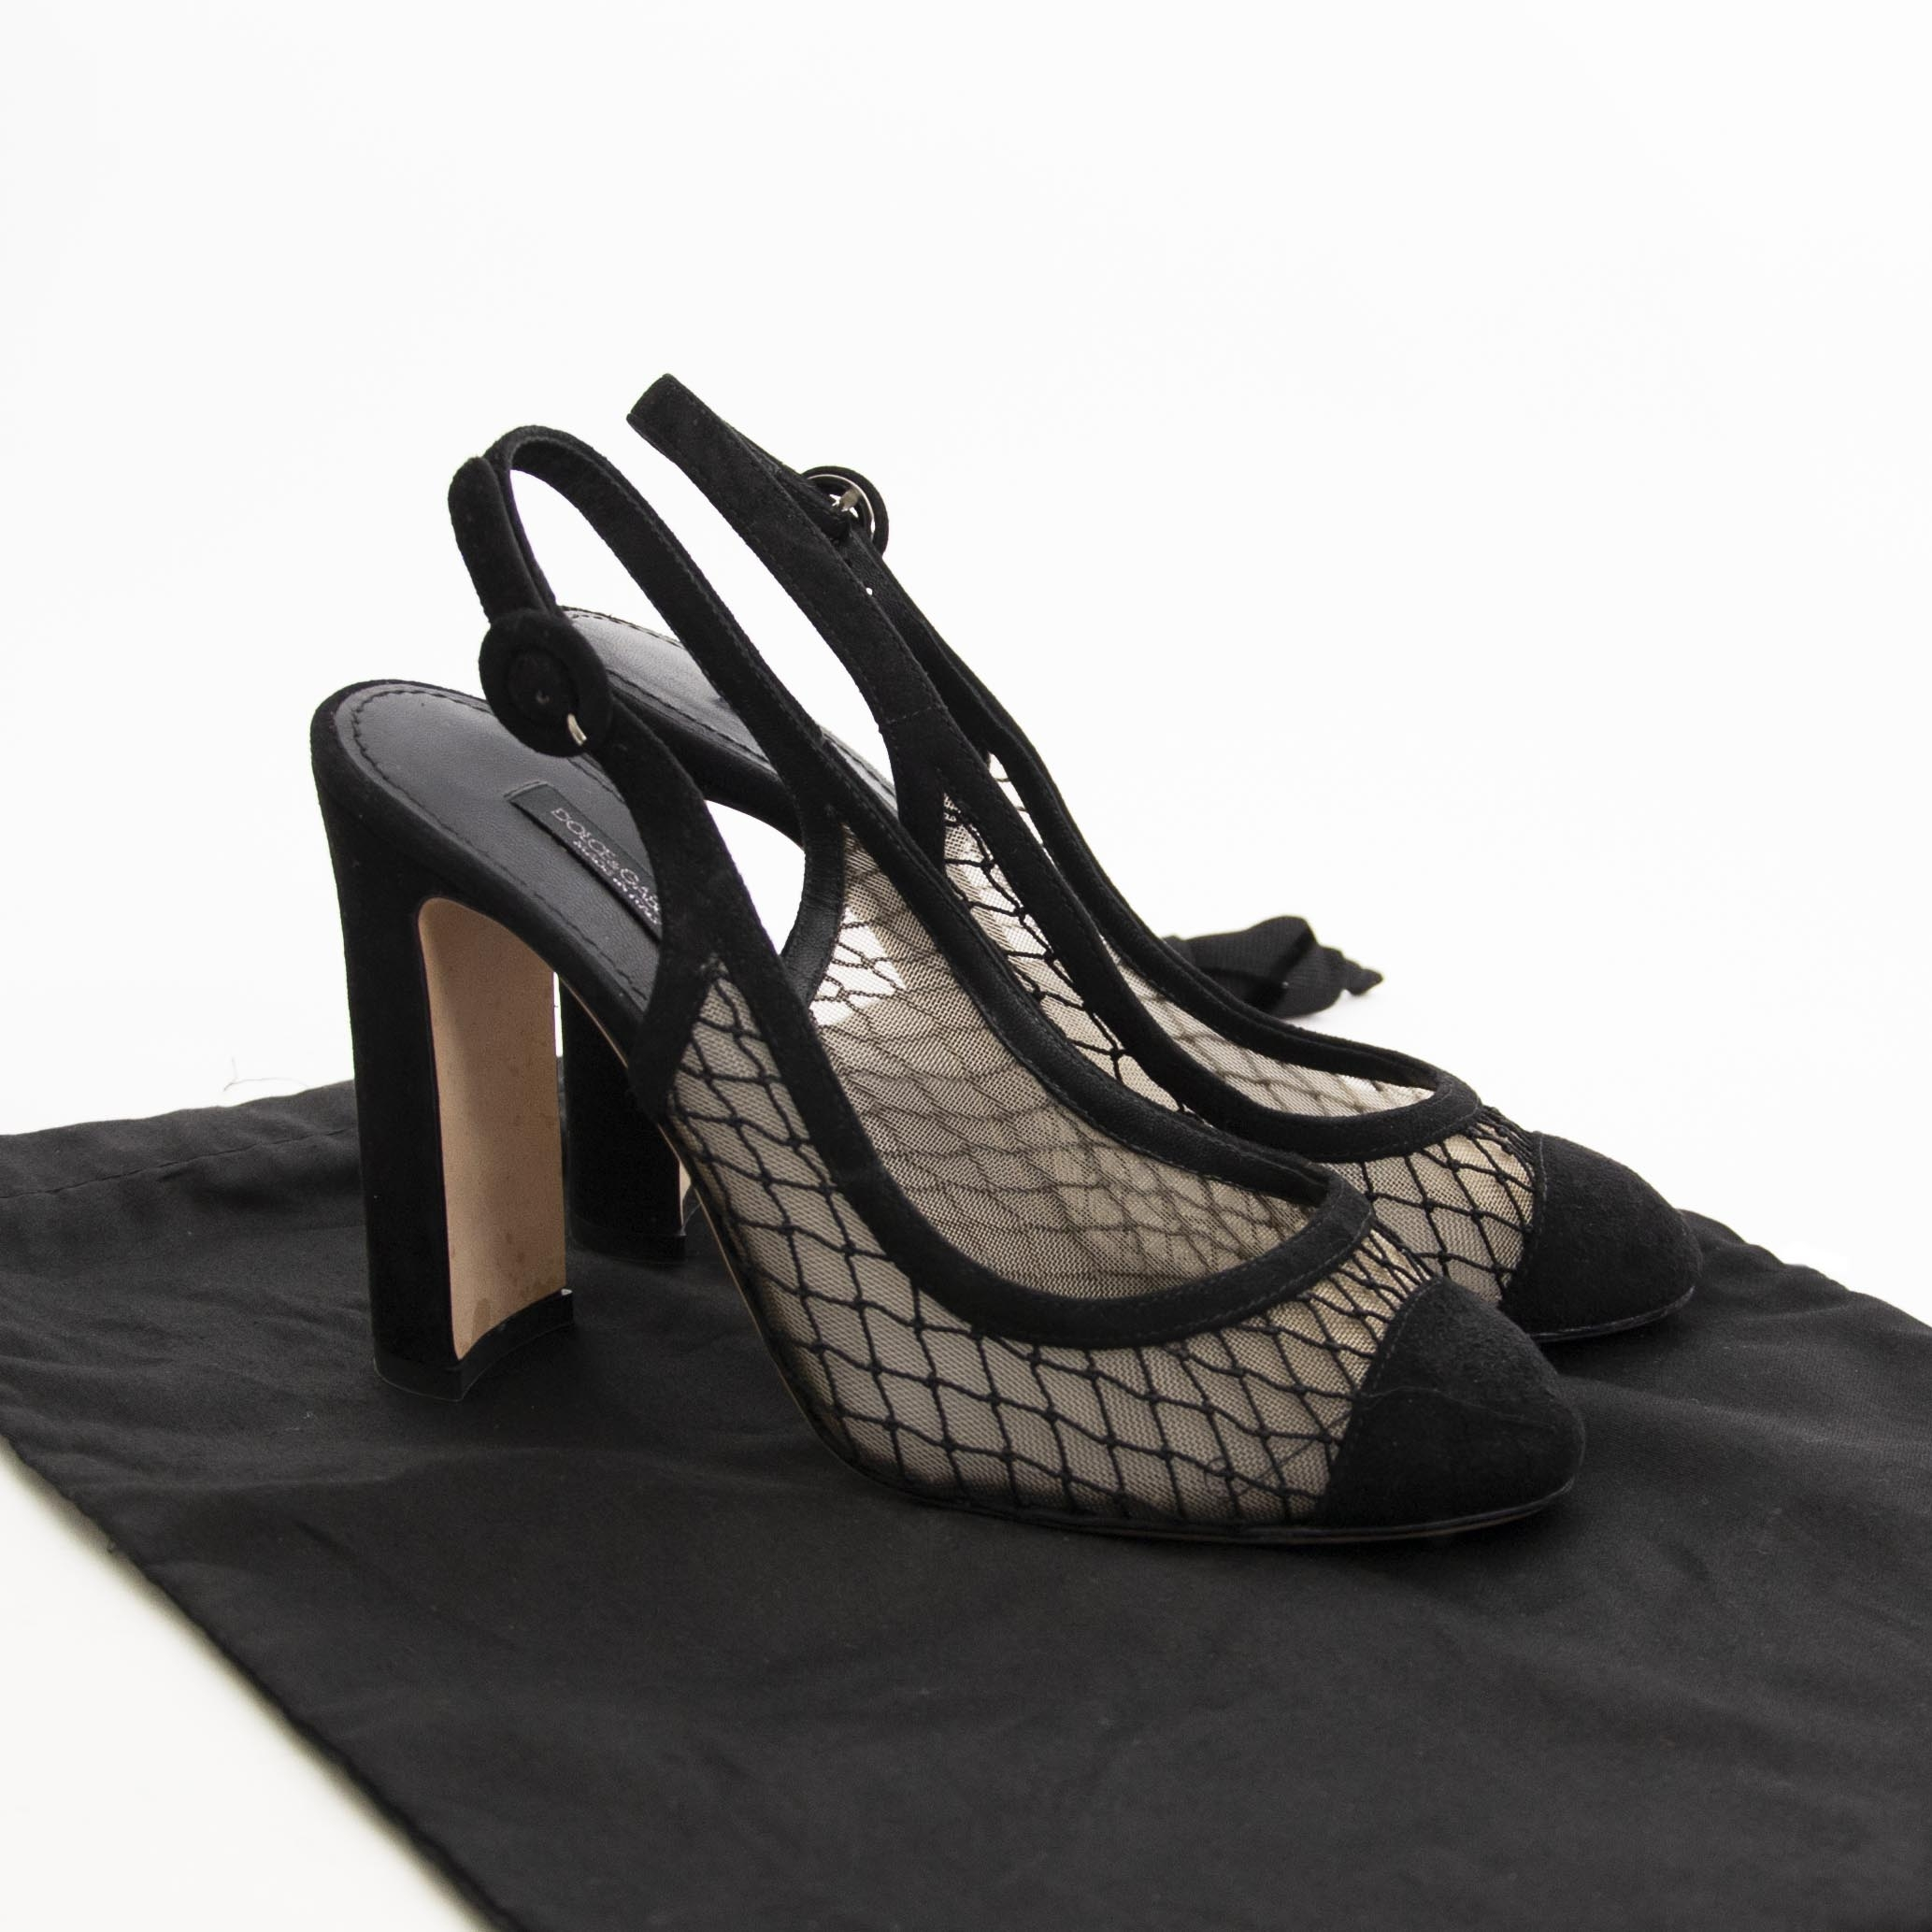 f7063566fdd3 ... Dolce   Gabbana Mesh Ankle Strap Pumps - Size 36 now for sale at  labellov vintage